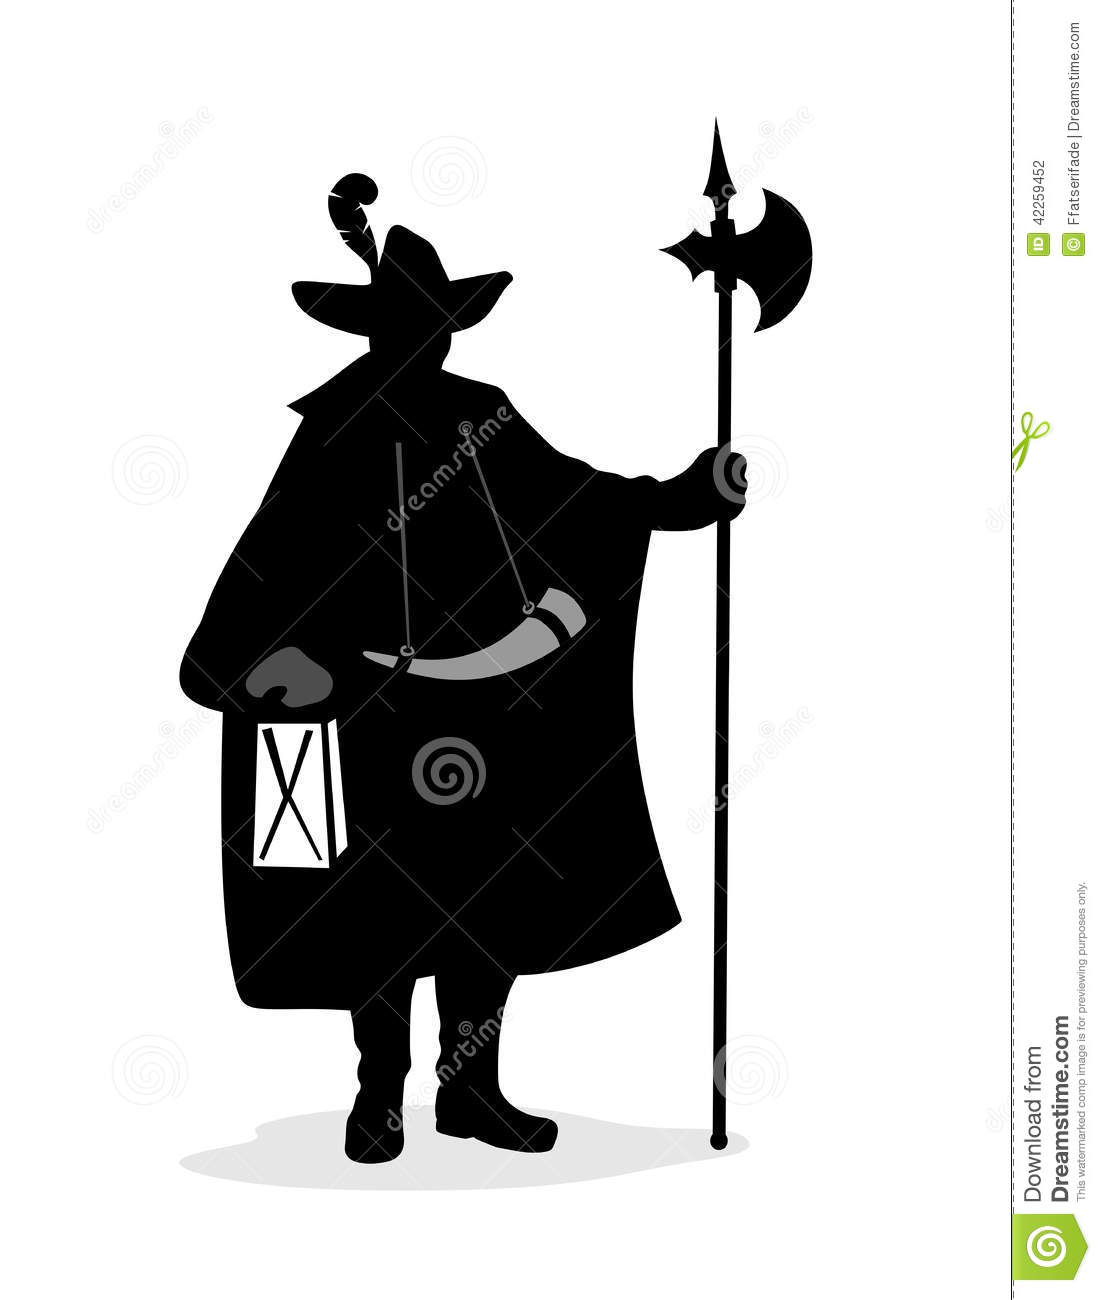 watchman clipart - photo #5